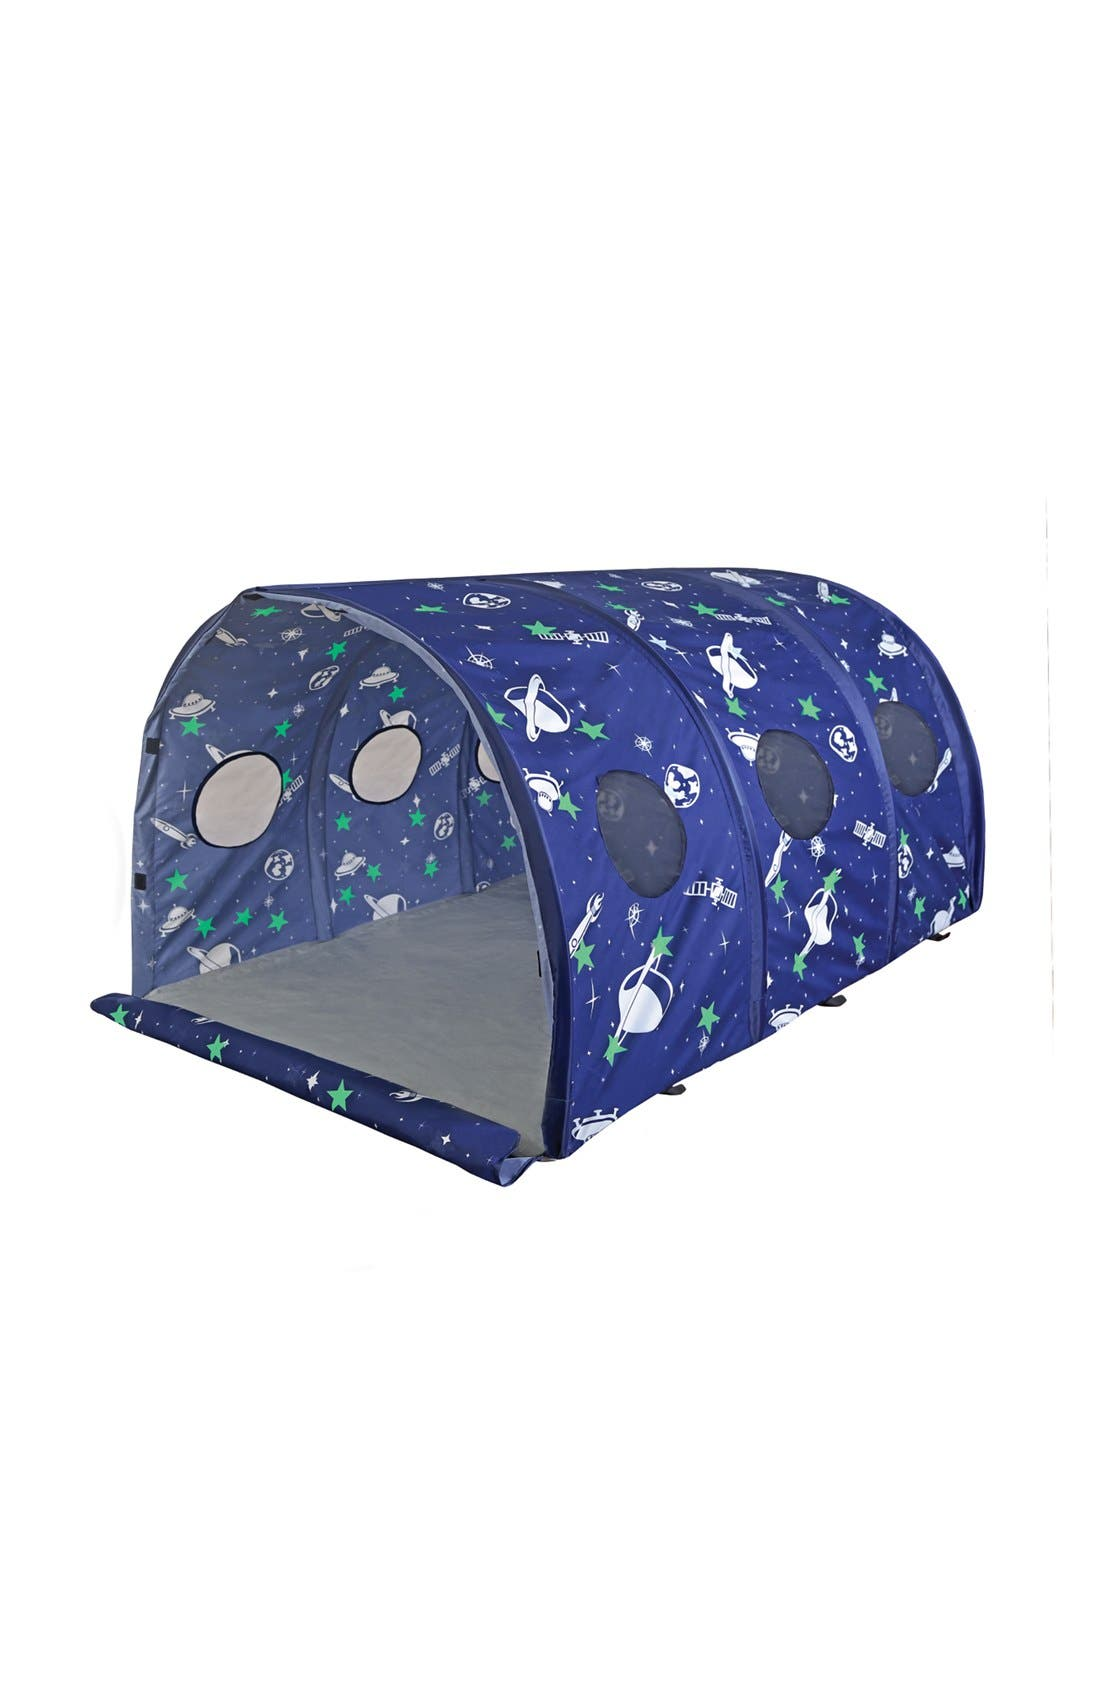 'Space Capsule' Glow in the Dark Tent,                         Main,                         color, Blue/ White